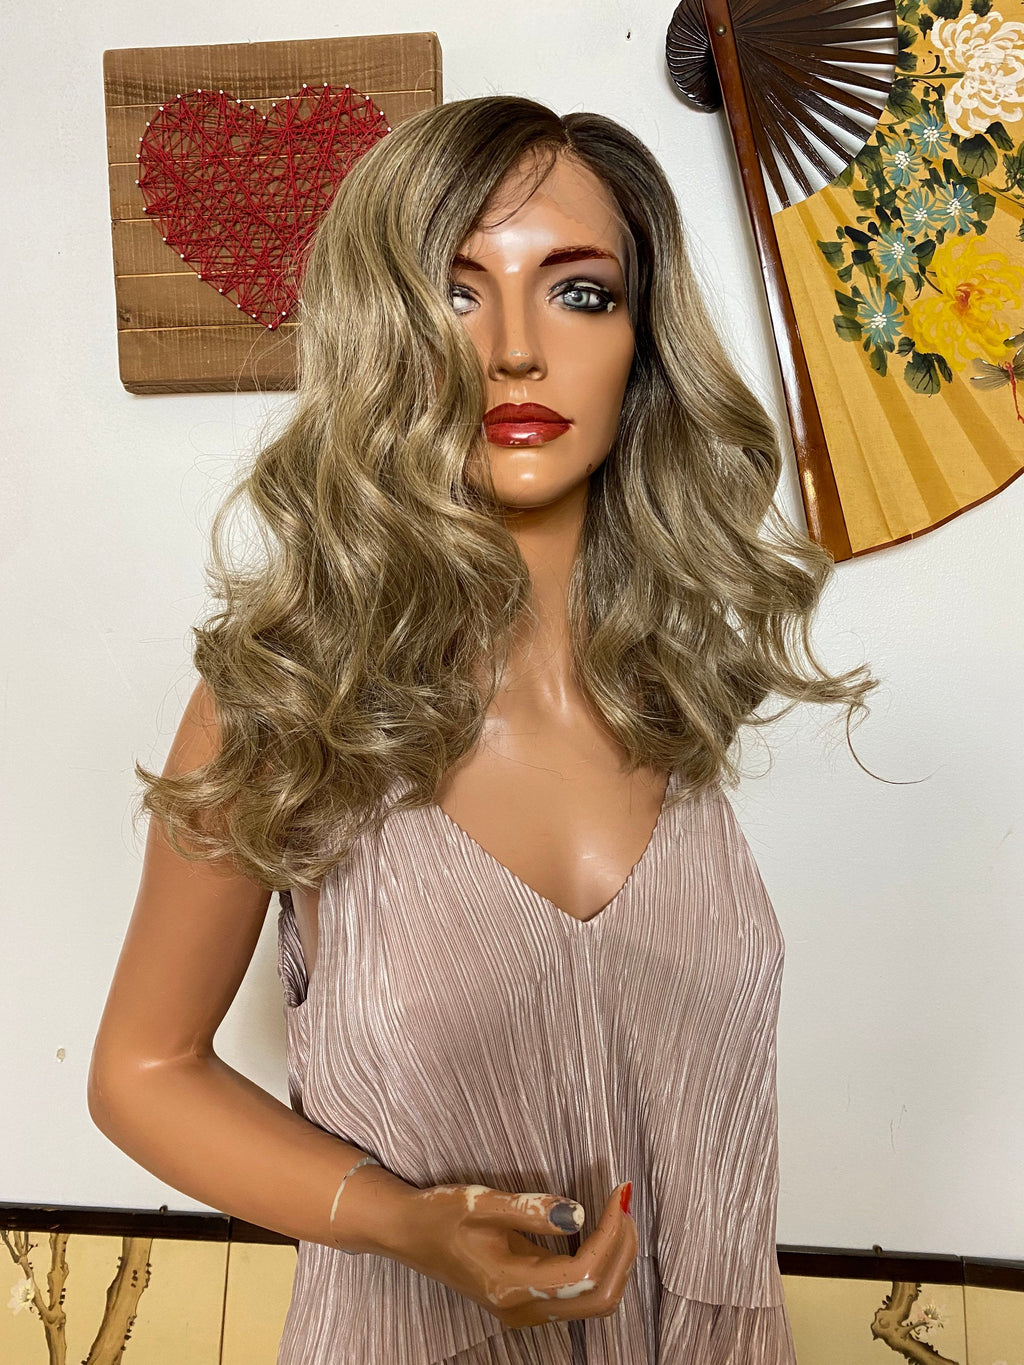 "LORIA ash blonde bob lace front wig 12""Long